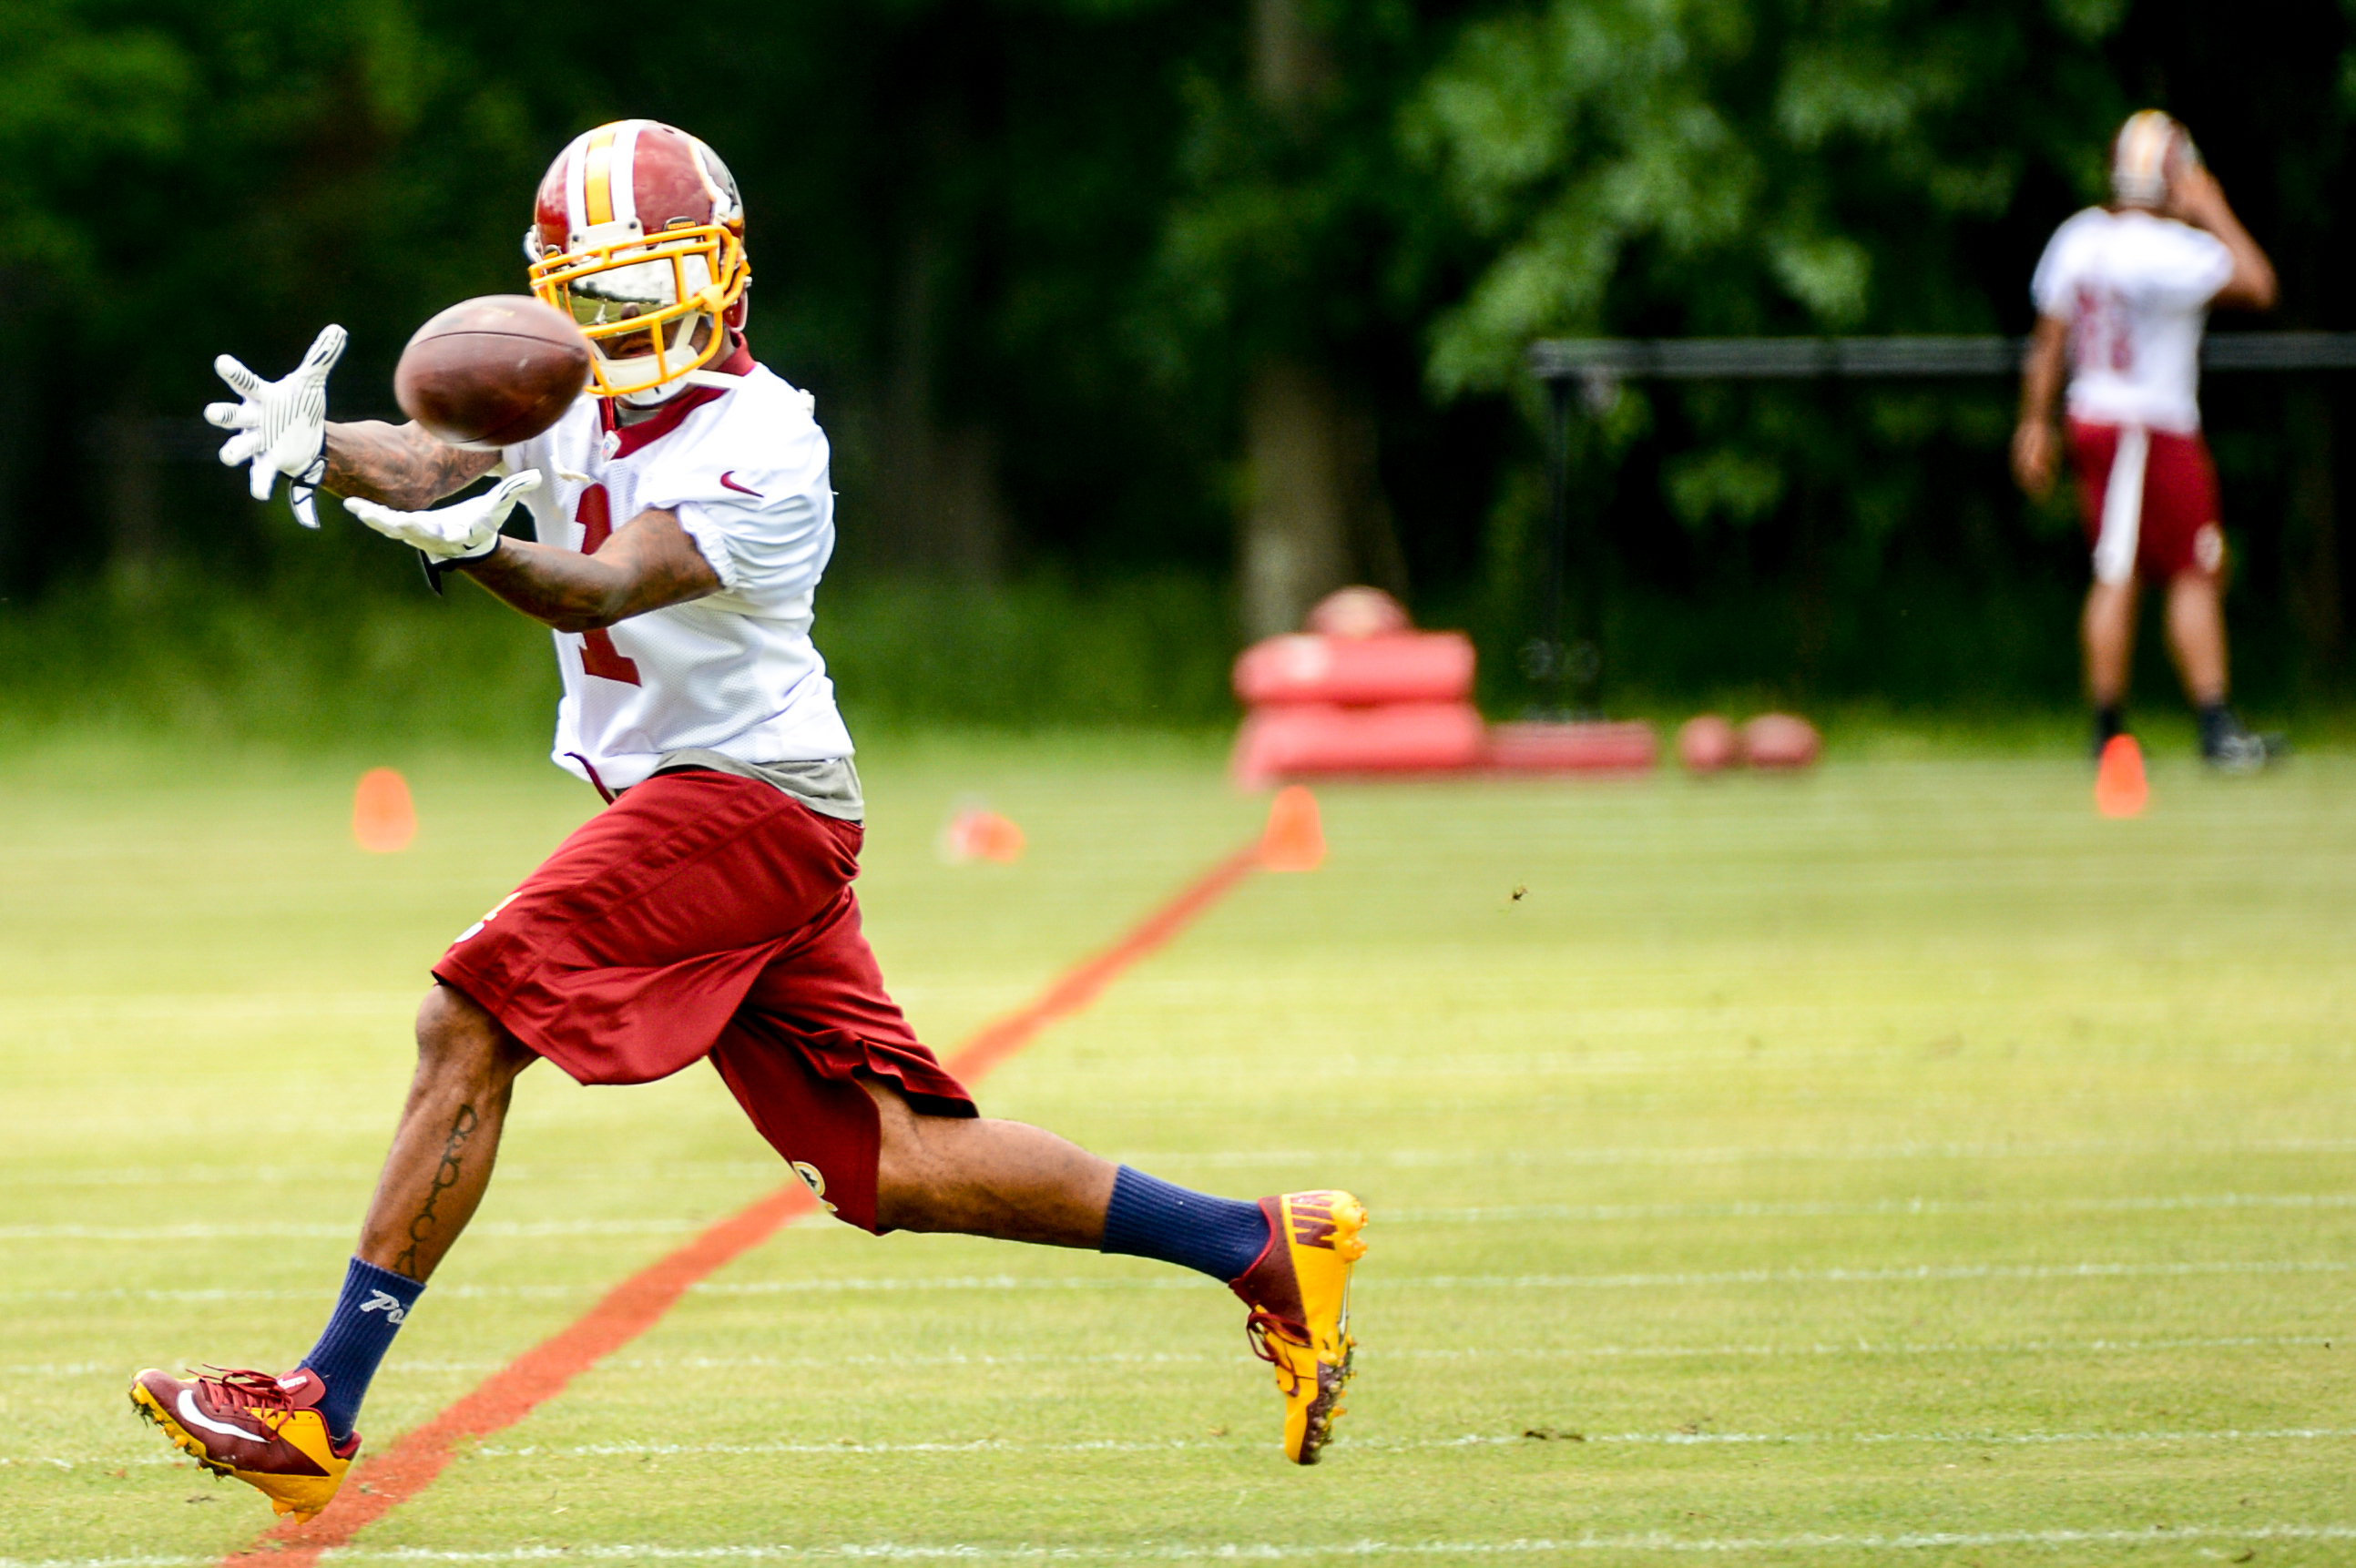 DeSean Jackson back in action at Redskins practice Washington Times